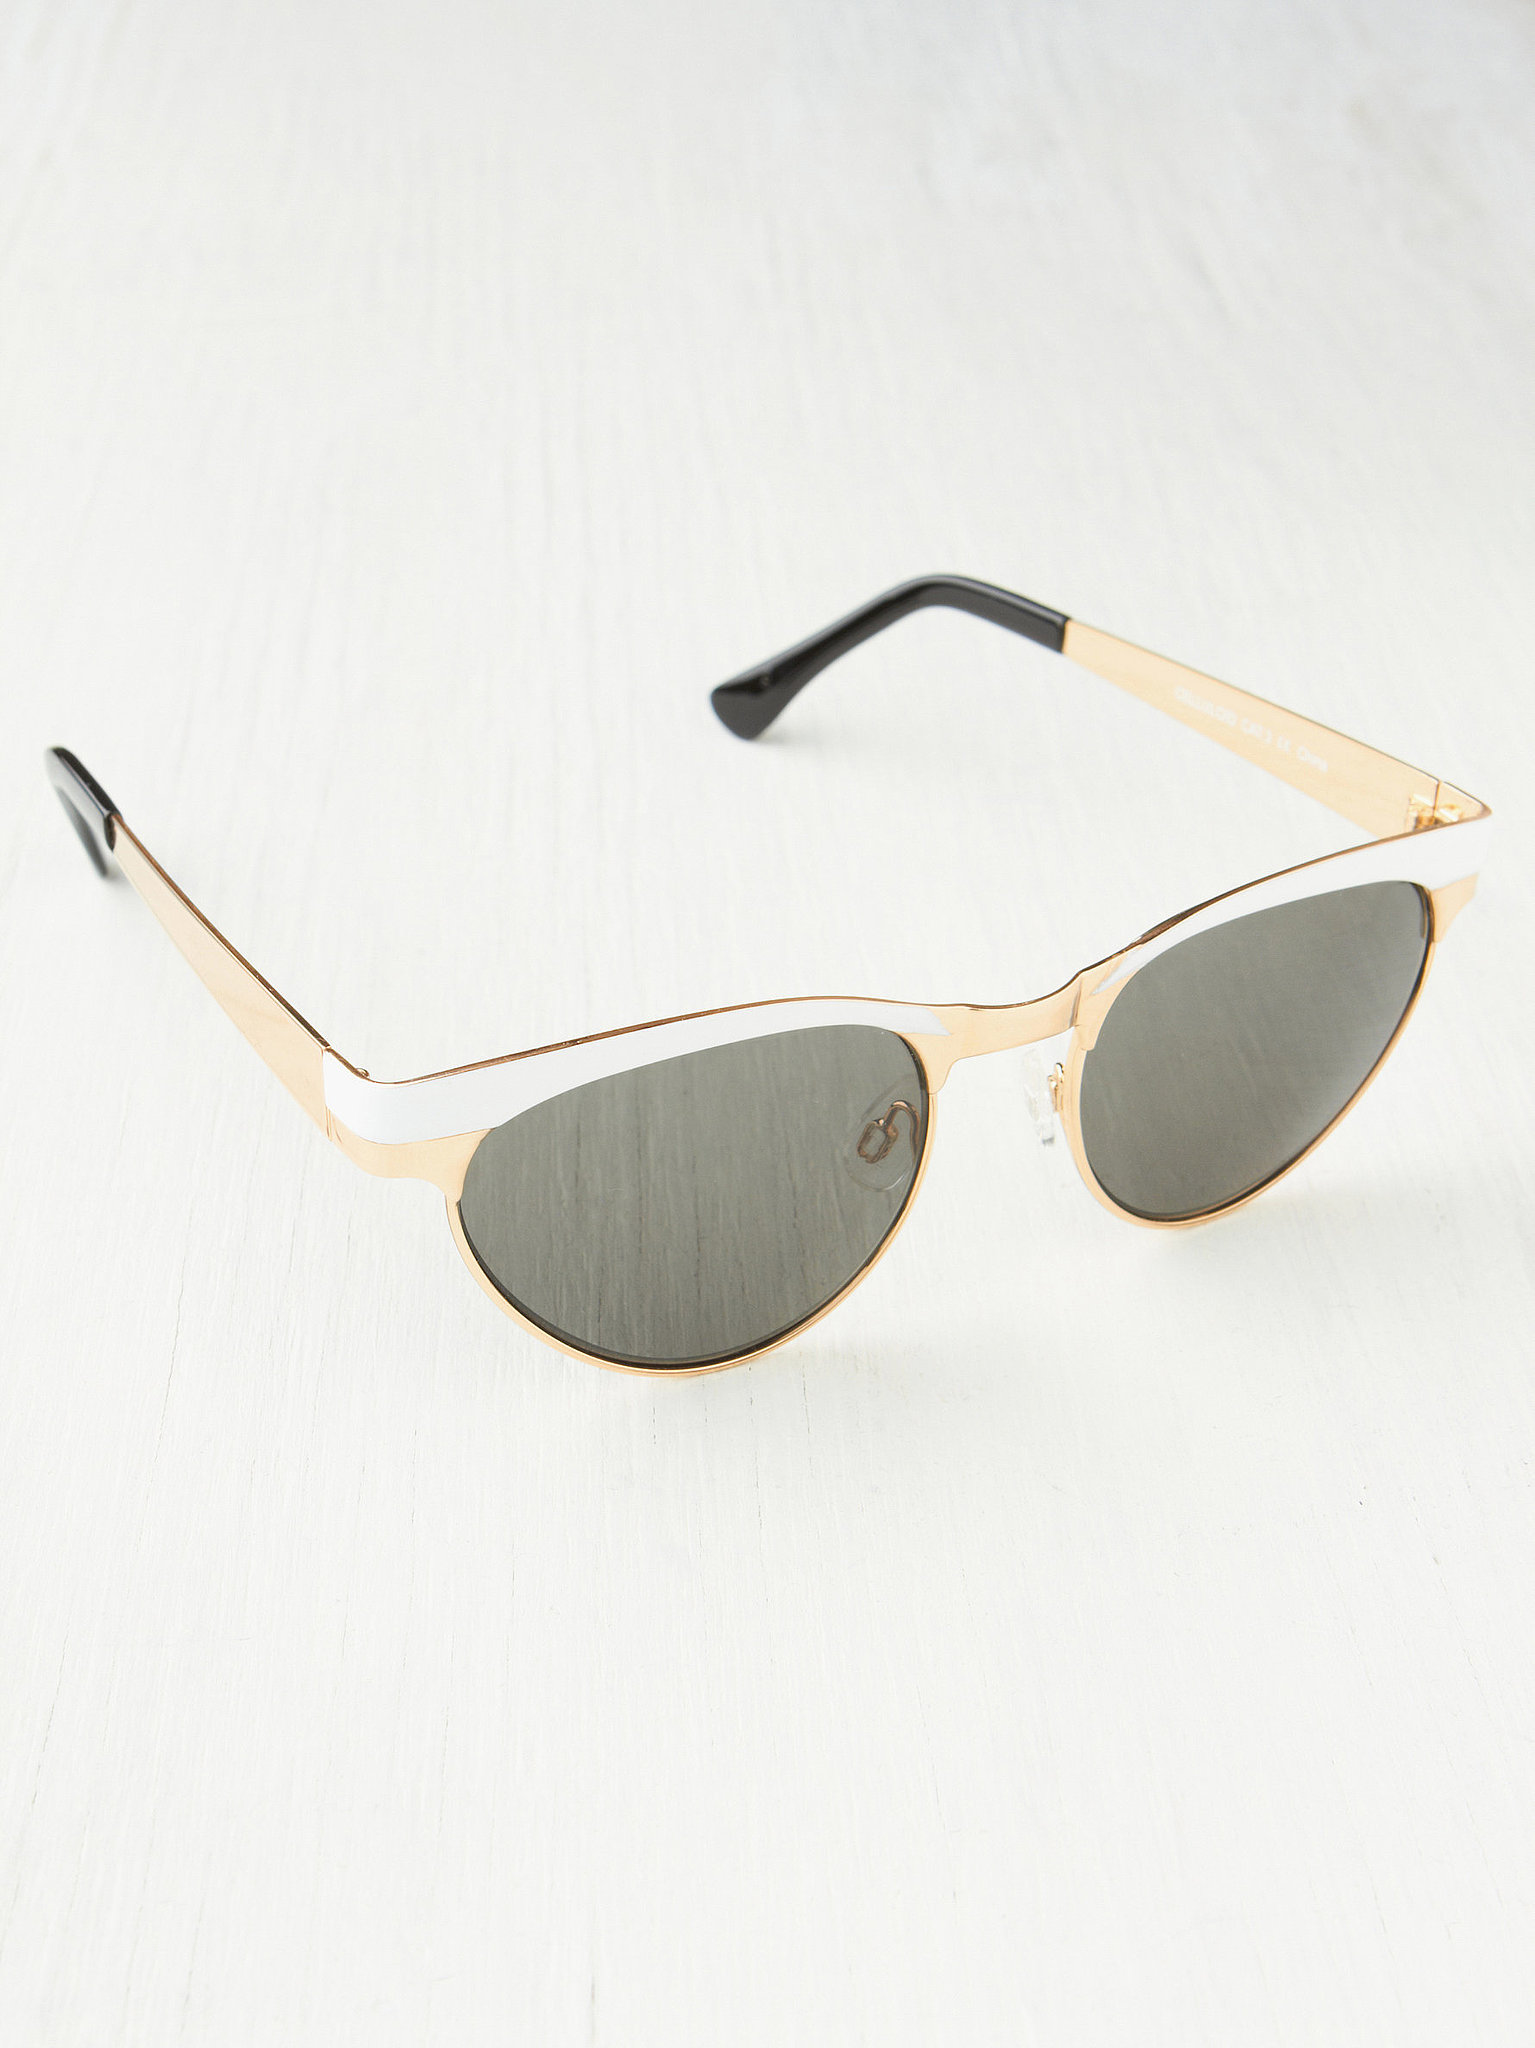 Old-school glam lovers should face the sun in this gold-rimmed Free People pair ($38).